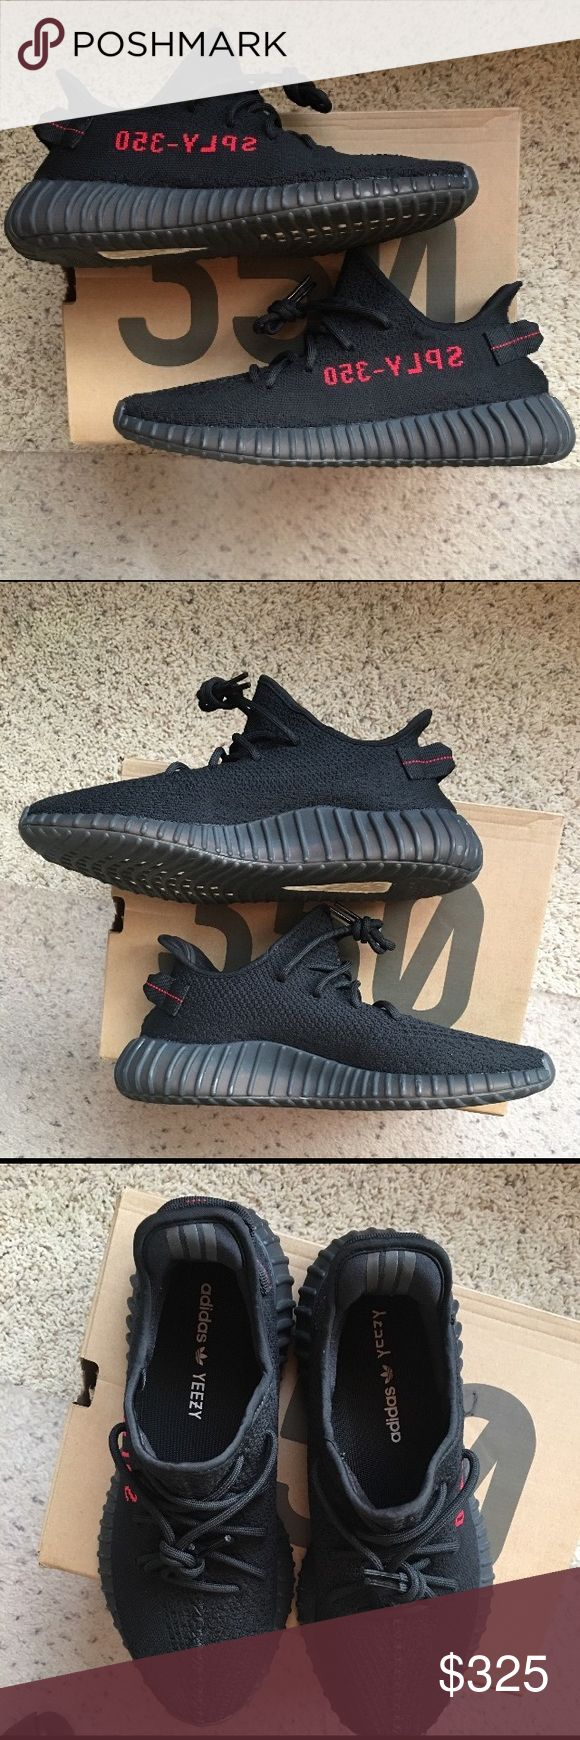 """Adidas yeezy boost 350 V2 """"bred"""" 100% authentic yeezys. They are used. Price has been lowered. Size 11. Will ship once payment is received. I only accept payments through square cash. Please text 678-640-3895 when you are ready to buy! adidas Shoes Sneakers"""